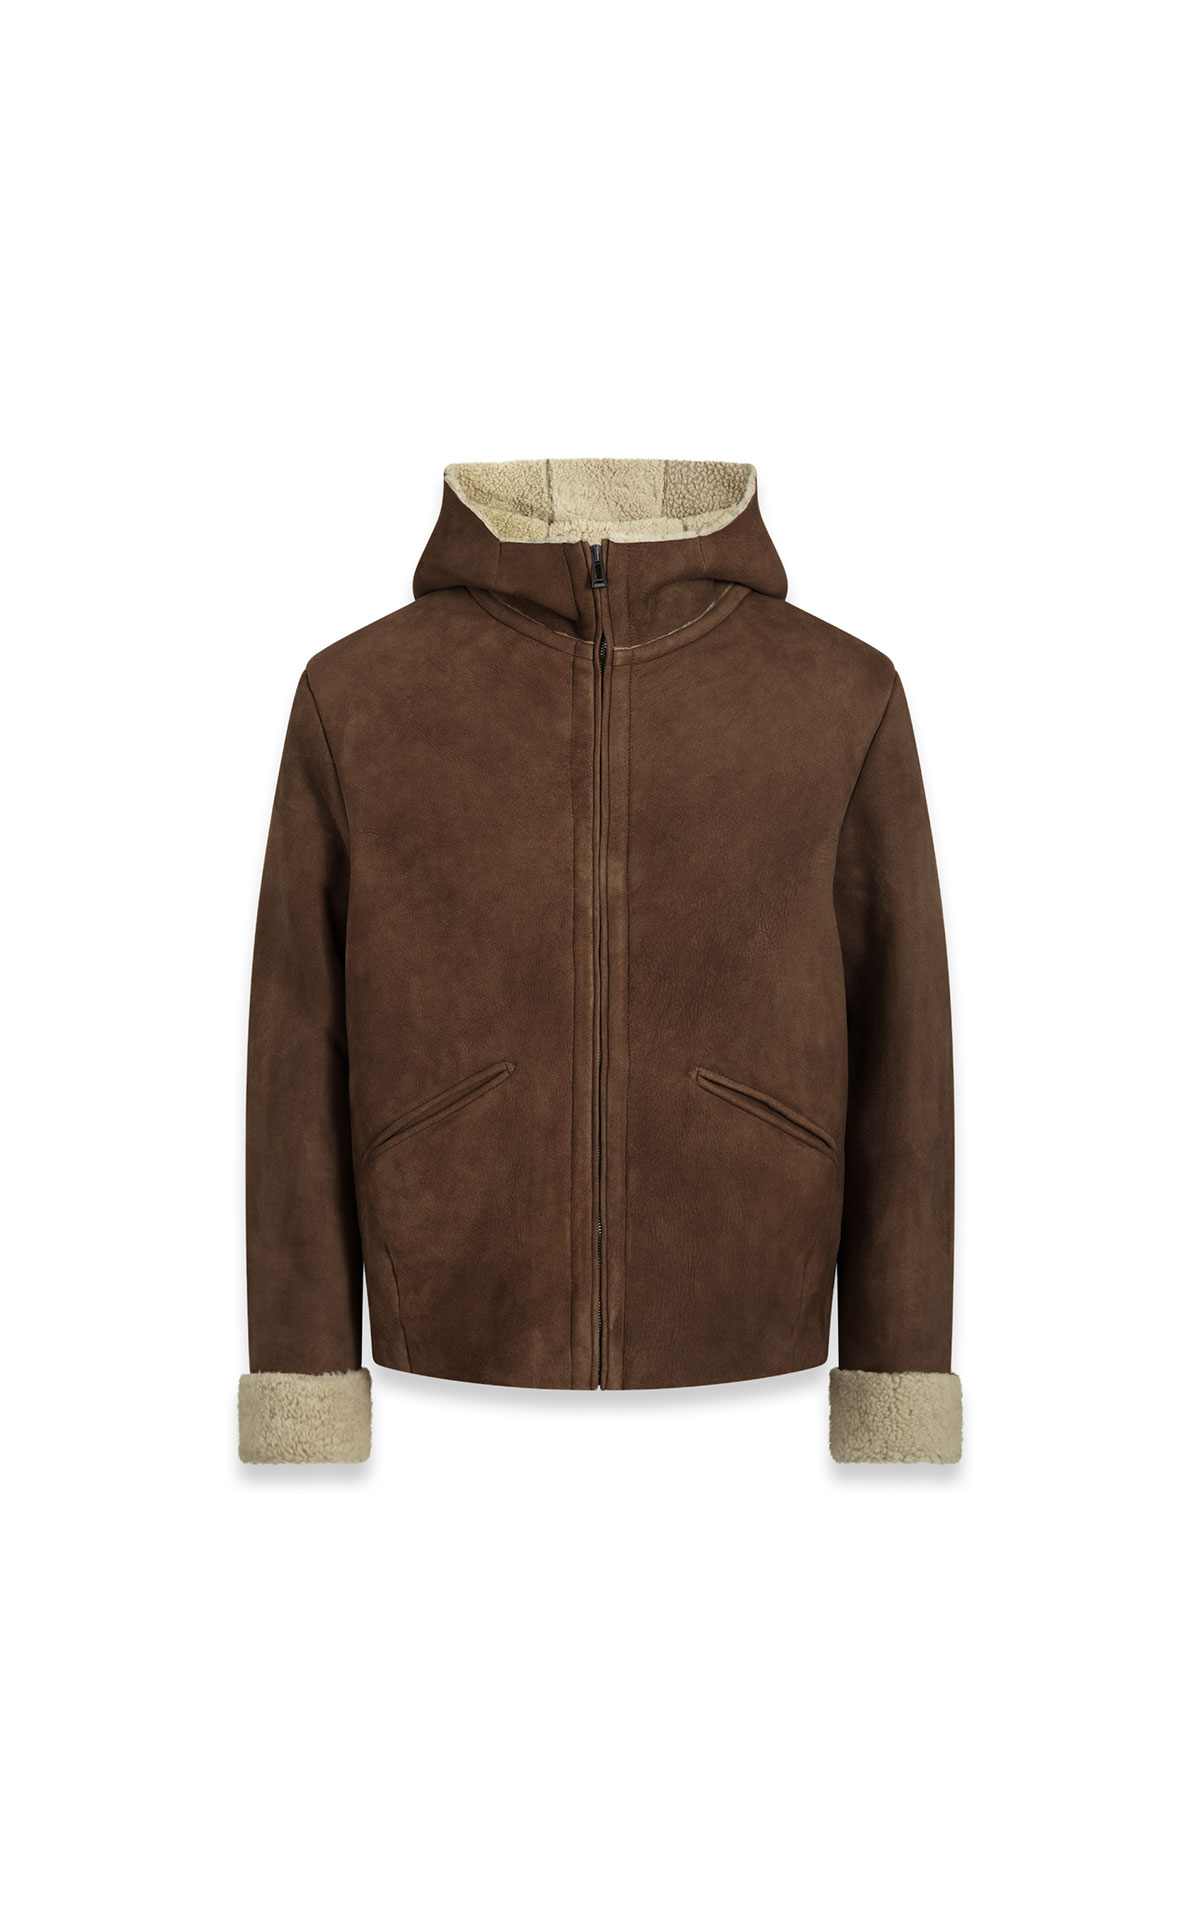 Belstaff  Glenn jacket from Bicester Village